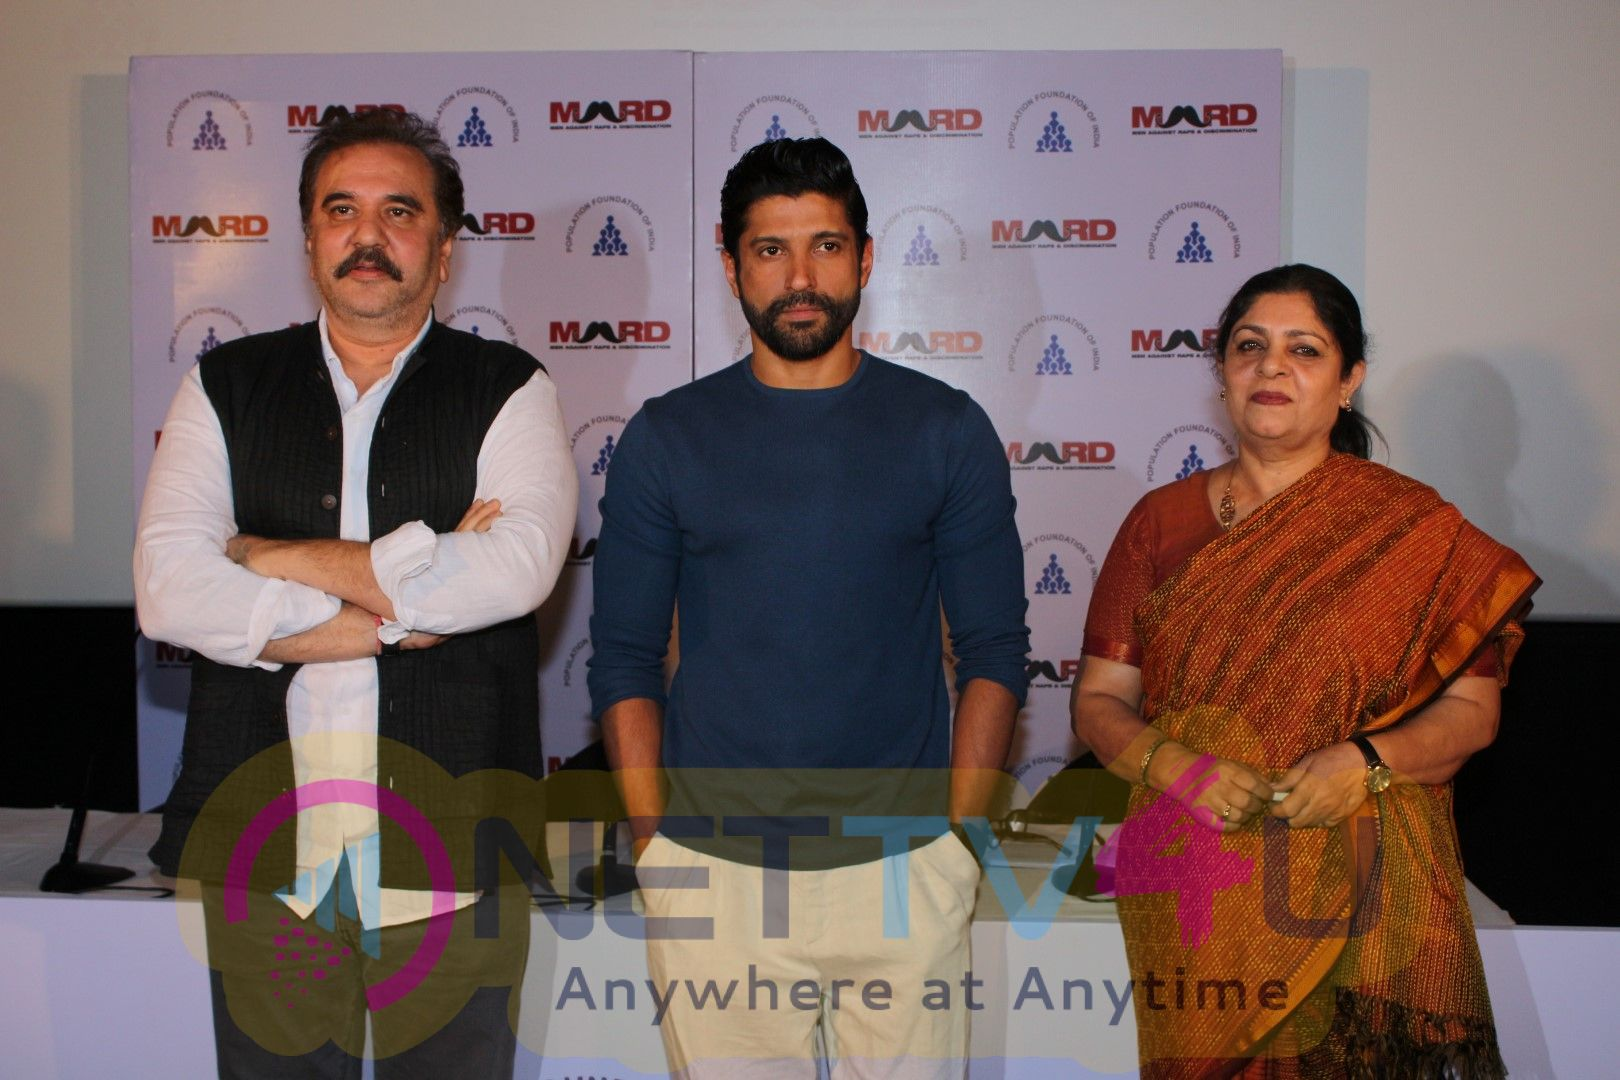 Pc Of Bas Ab Bahut Ho Gaya Campaign & Concert With Farhan Akhtar Pics Hindi Gallery